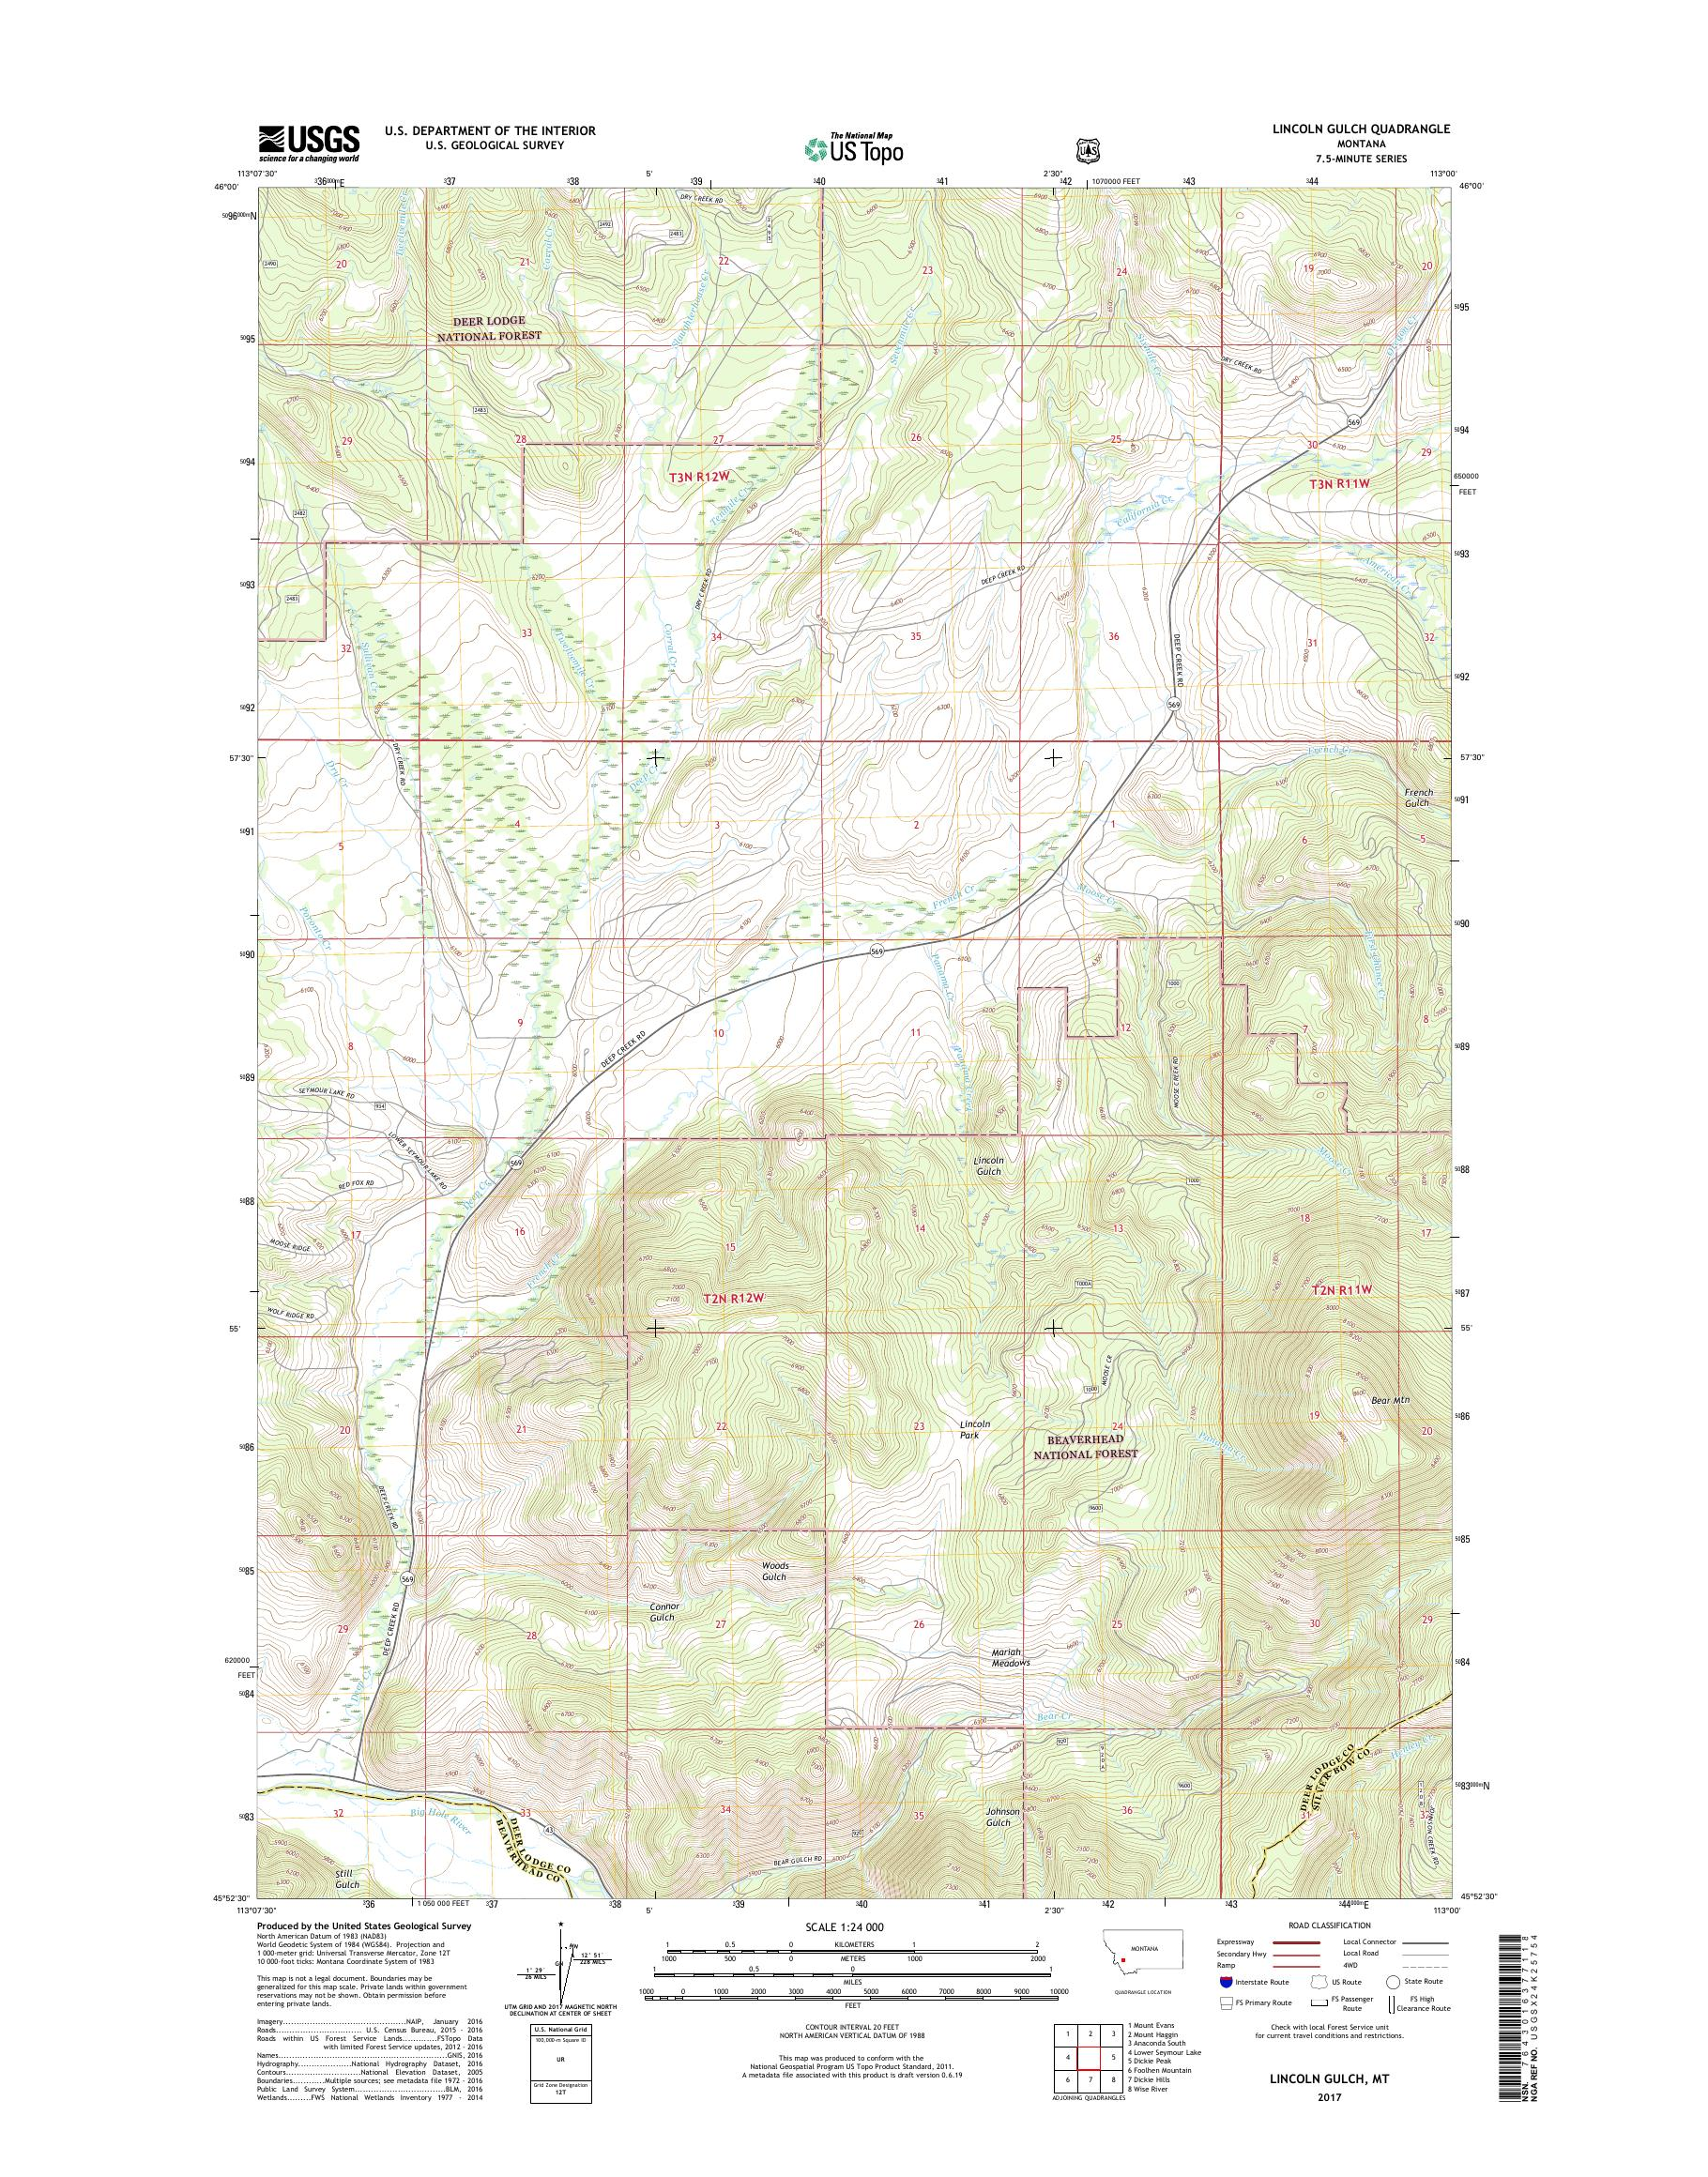 MyTopo Lincoln Gulch, Montana USGS Quad Topo Map on map of lavallette new jersey, map of linthicum maryland, map of leetonia ohio, map of ledyard connecticut, map of lincoln nebraska, map of lebanon connecticut, map of lincoln ontario, map of monticello iowa, map of lititz pennsylvania,